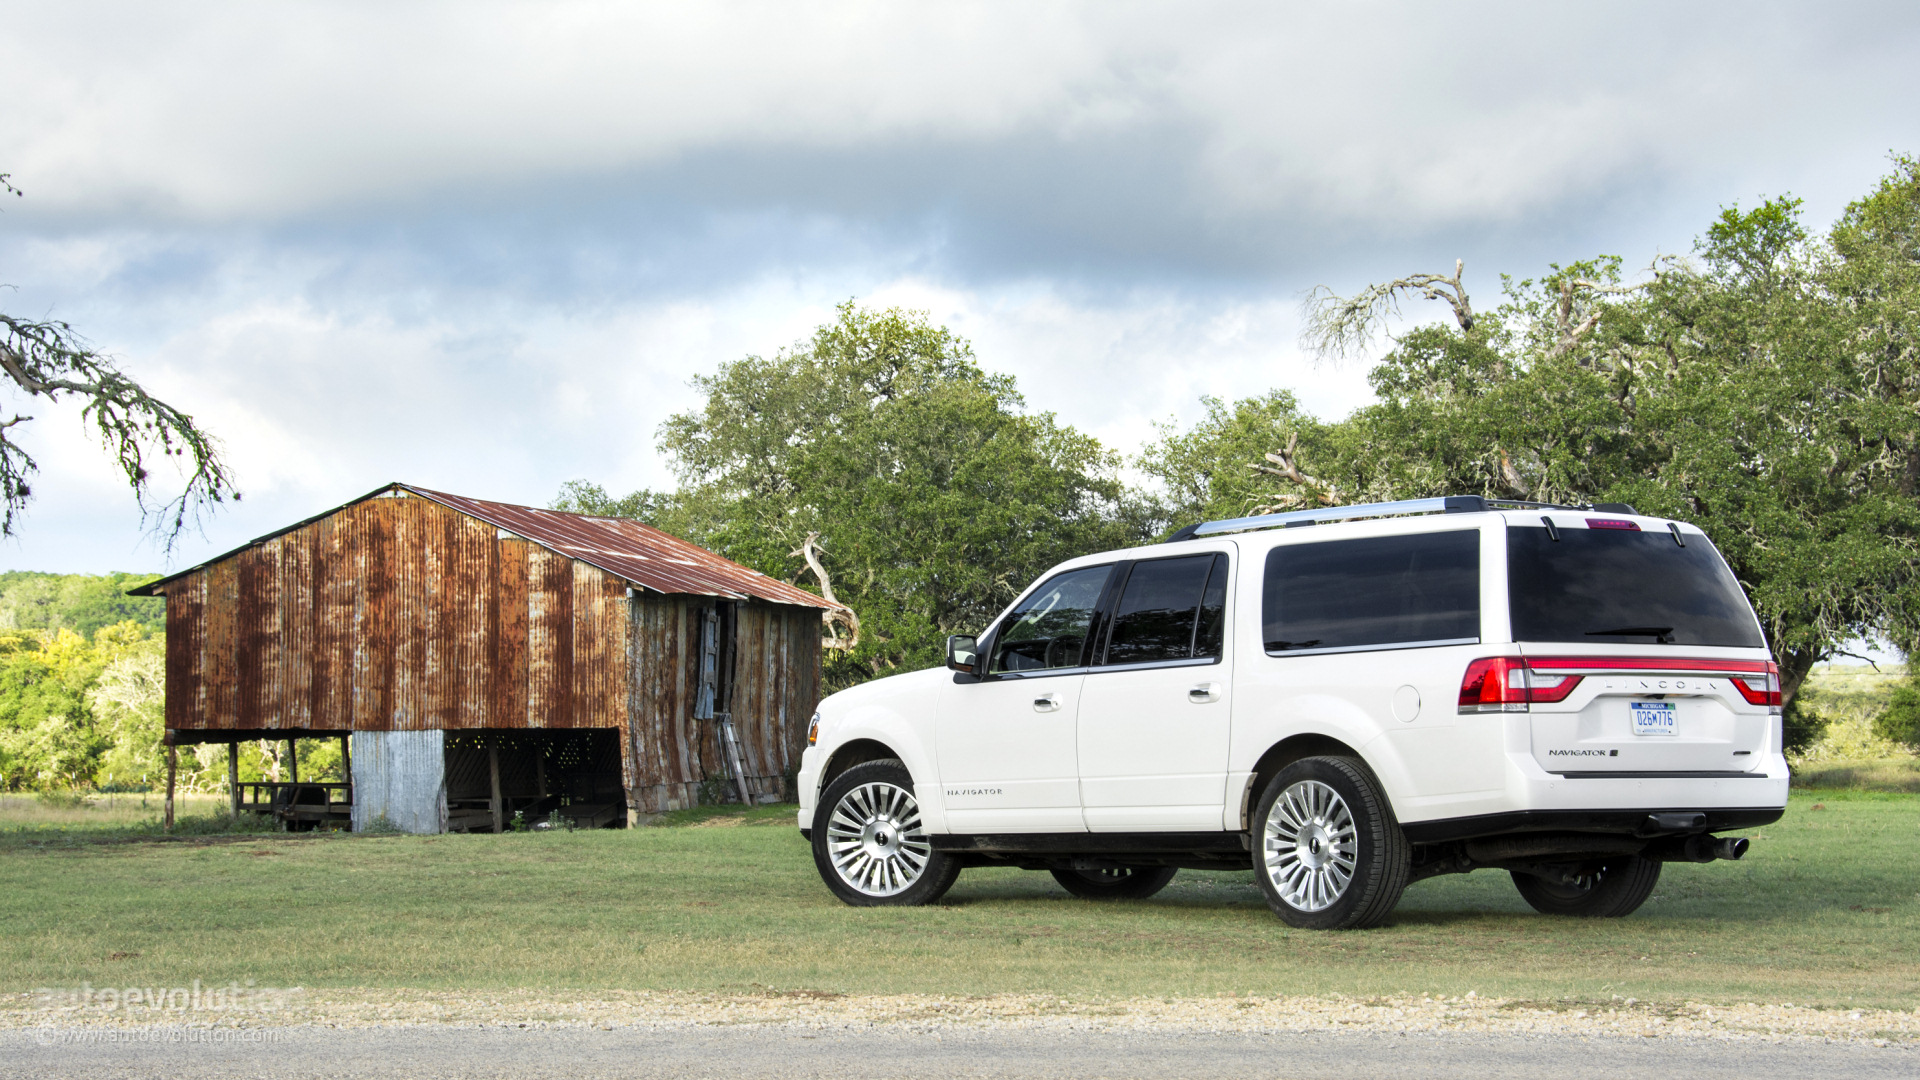 https://s1.cdn.autoevolution.com/images/news/2015-lincoln-navigator-tested-it-doesnt-justify-the-investment-92268_1.jpg